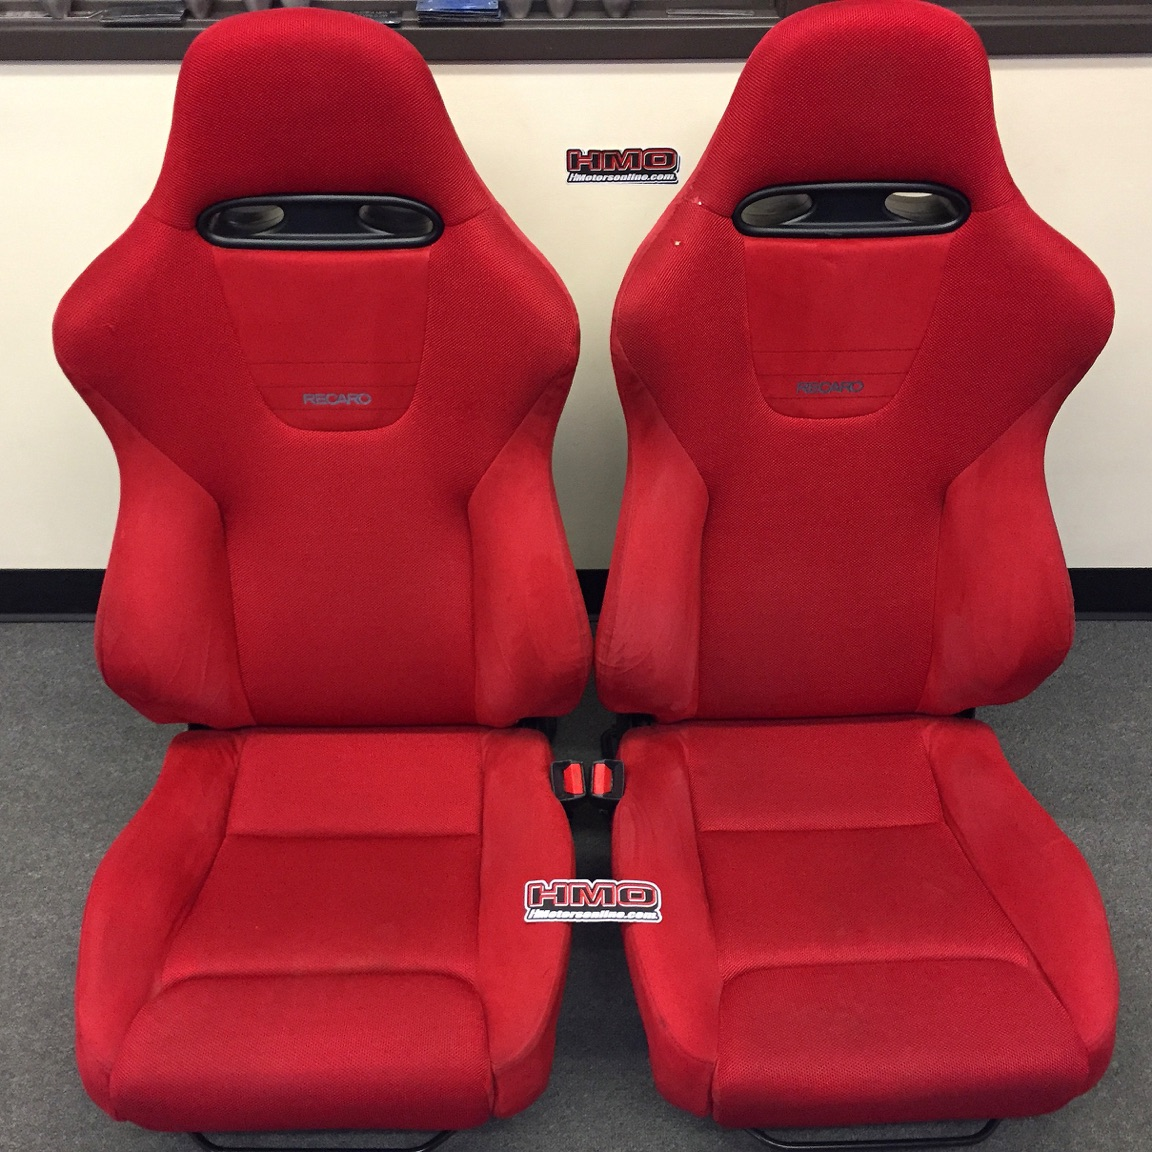 Motors For Sale >> EP3 Civic TypeR Red RECARO seats – HMotorsOnline